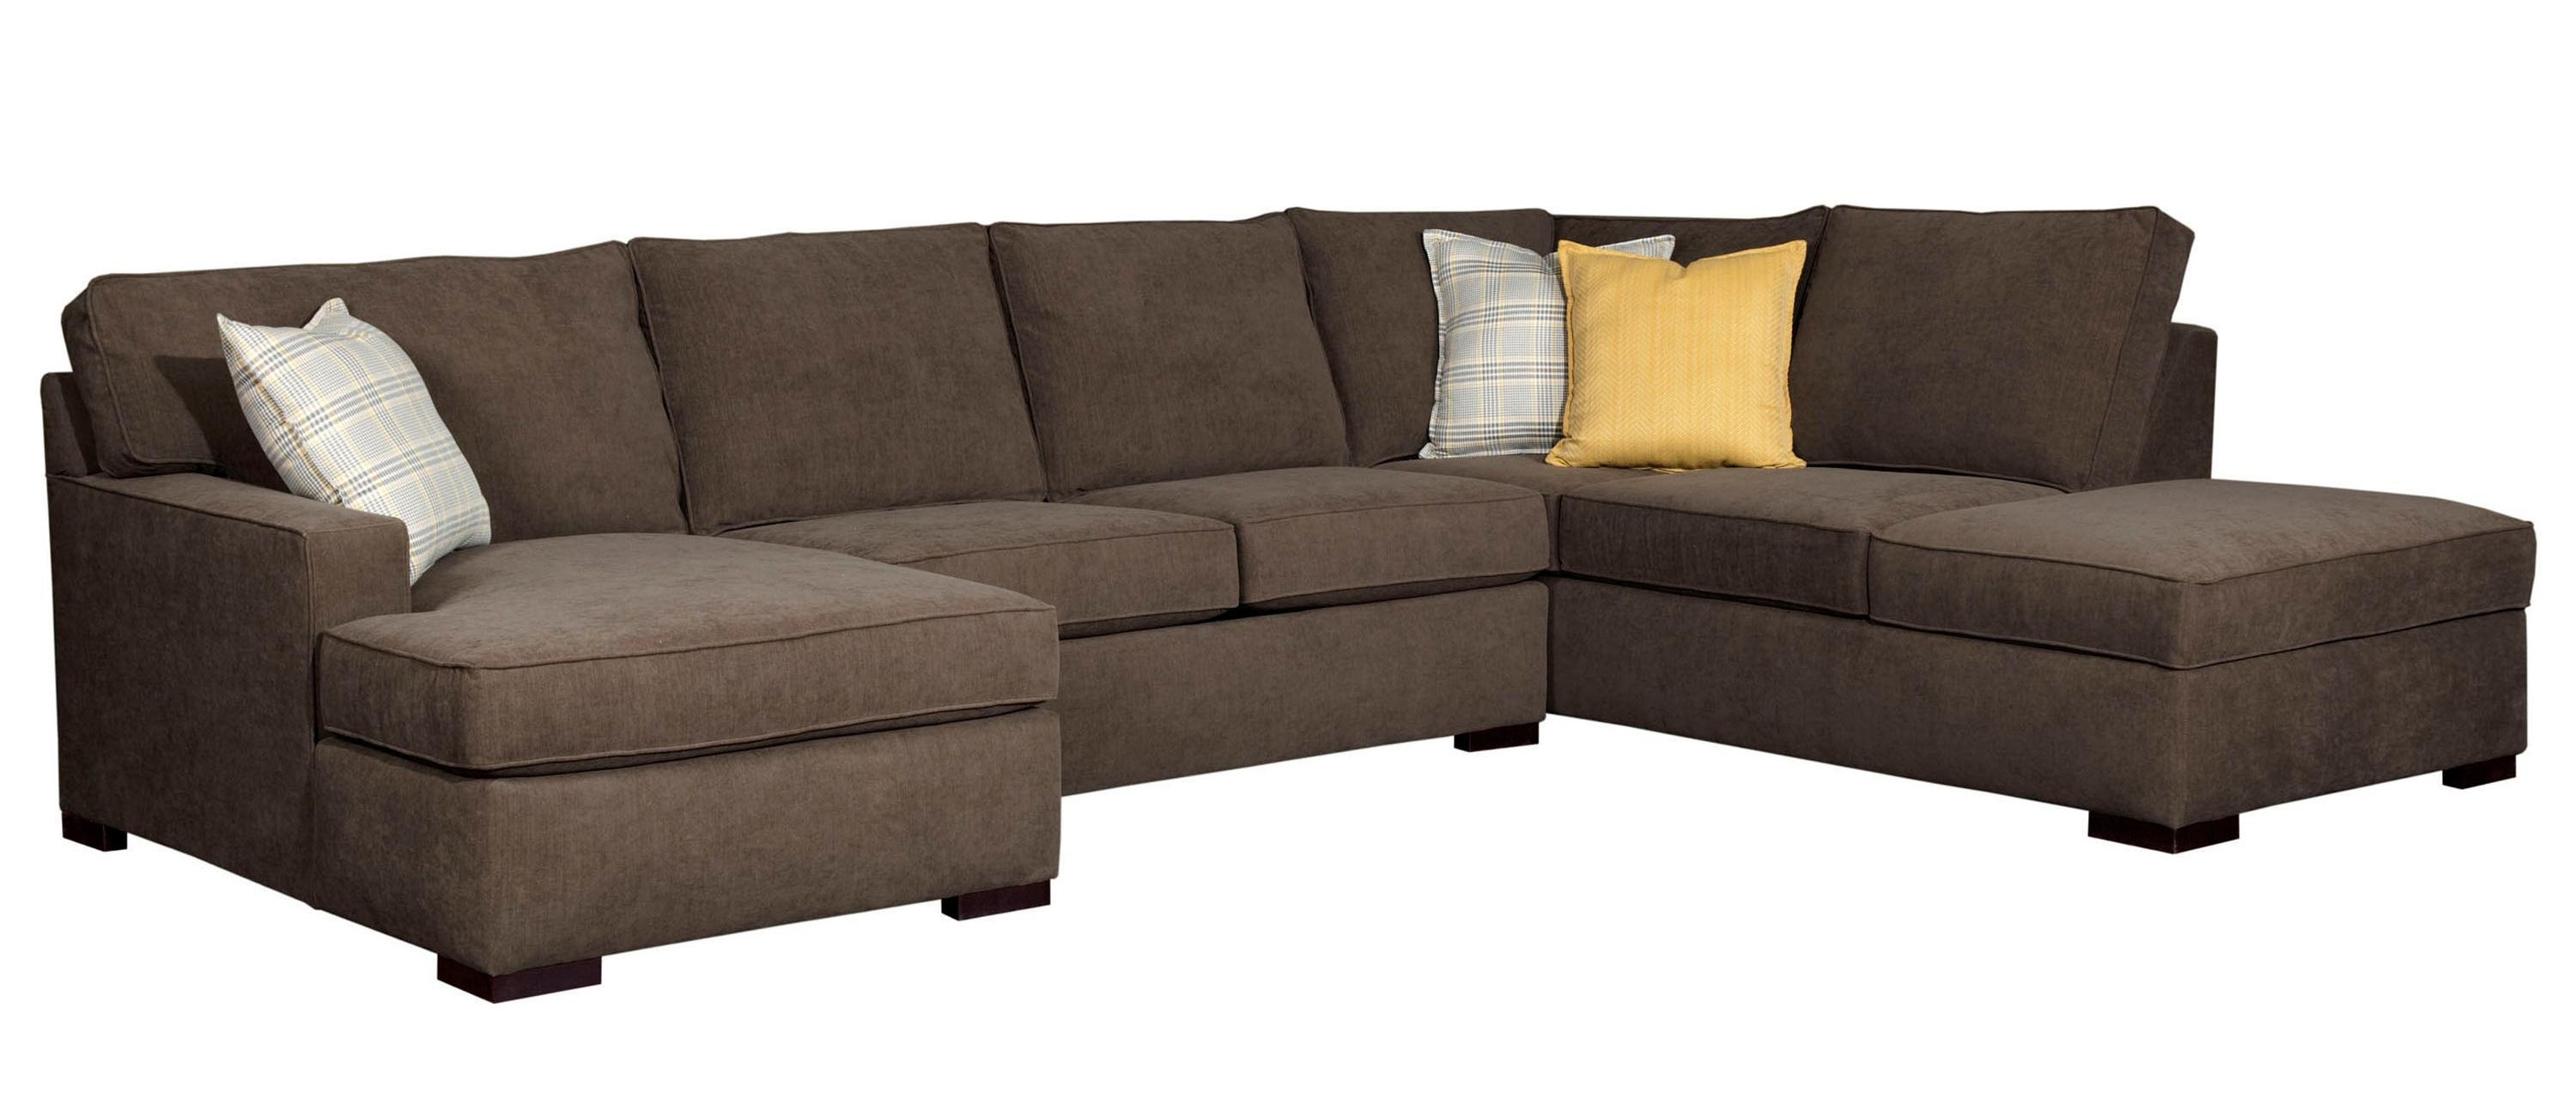 Broyhill Furniture Raphael Contemporary Sectional Sofa With Laf In Broyhill Sectional Sofas (View 4 of 15)